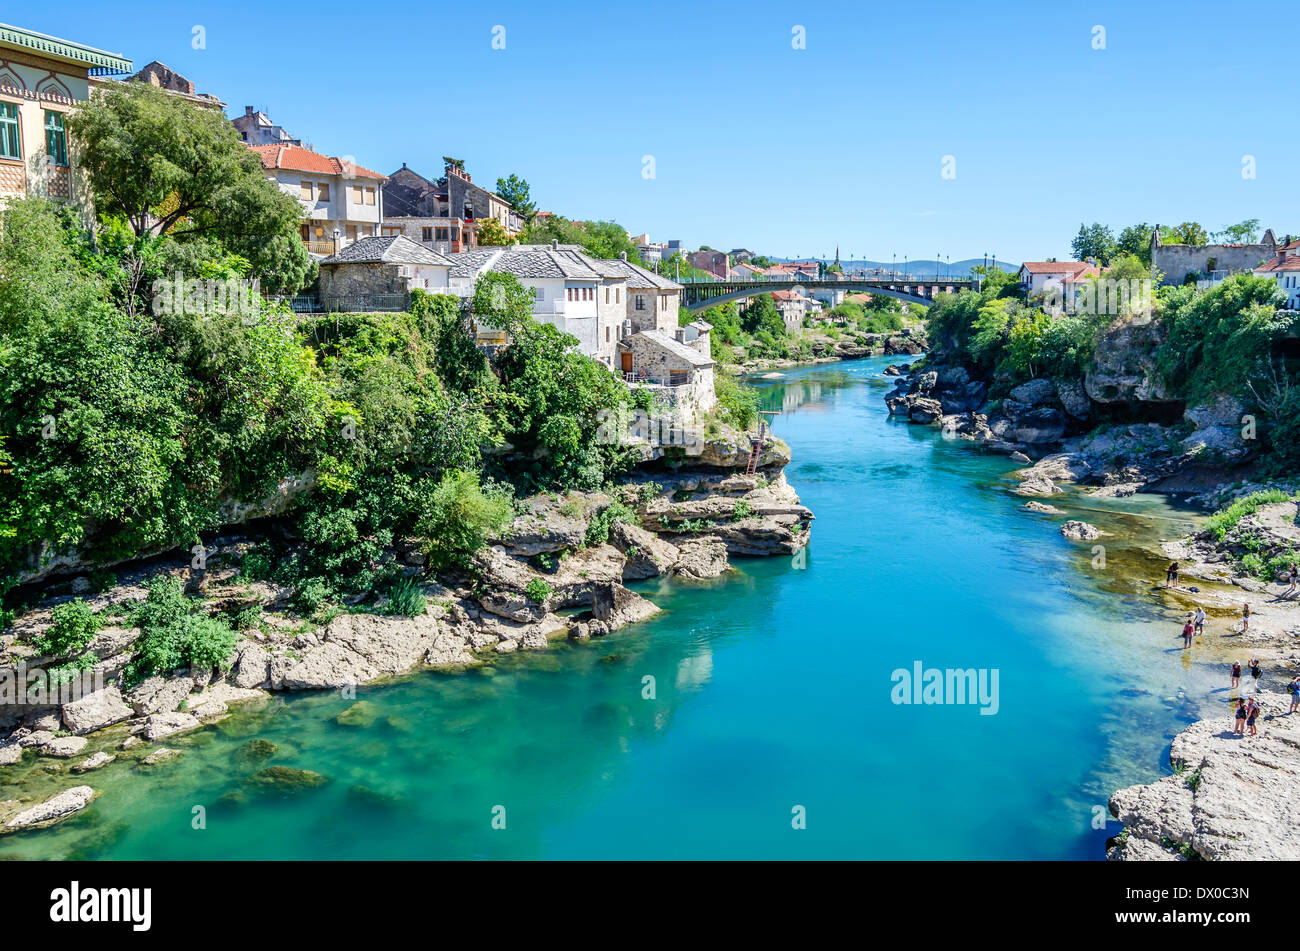 Beautiful river running through Mostar, Bosnia - Stock Image